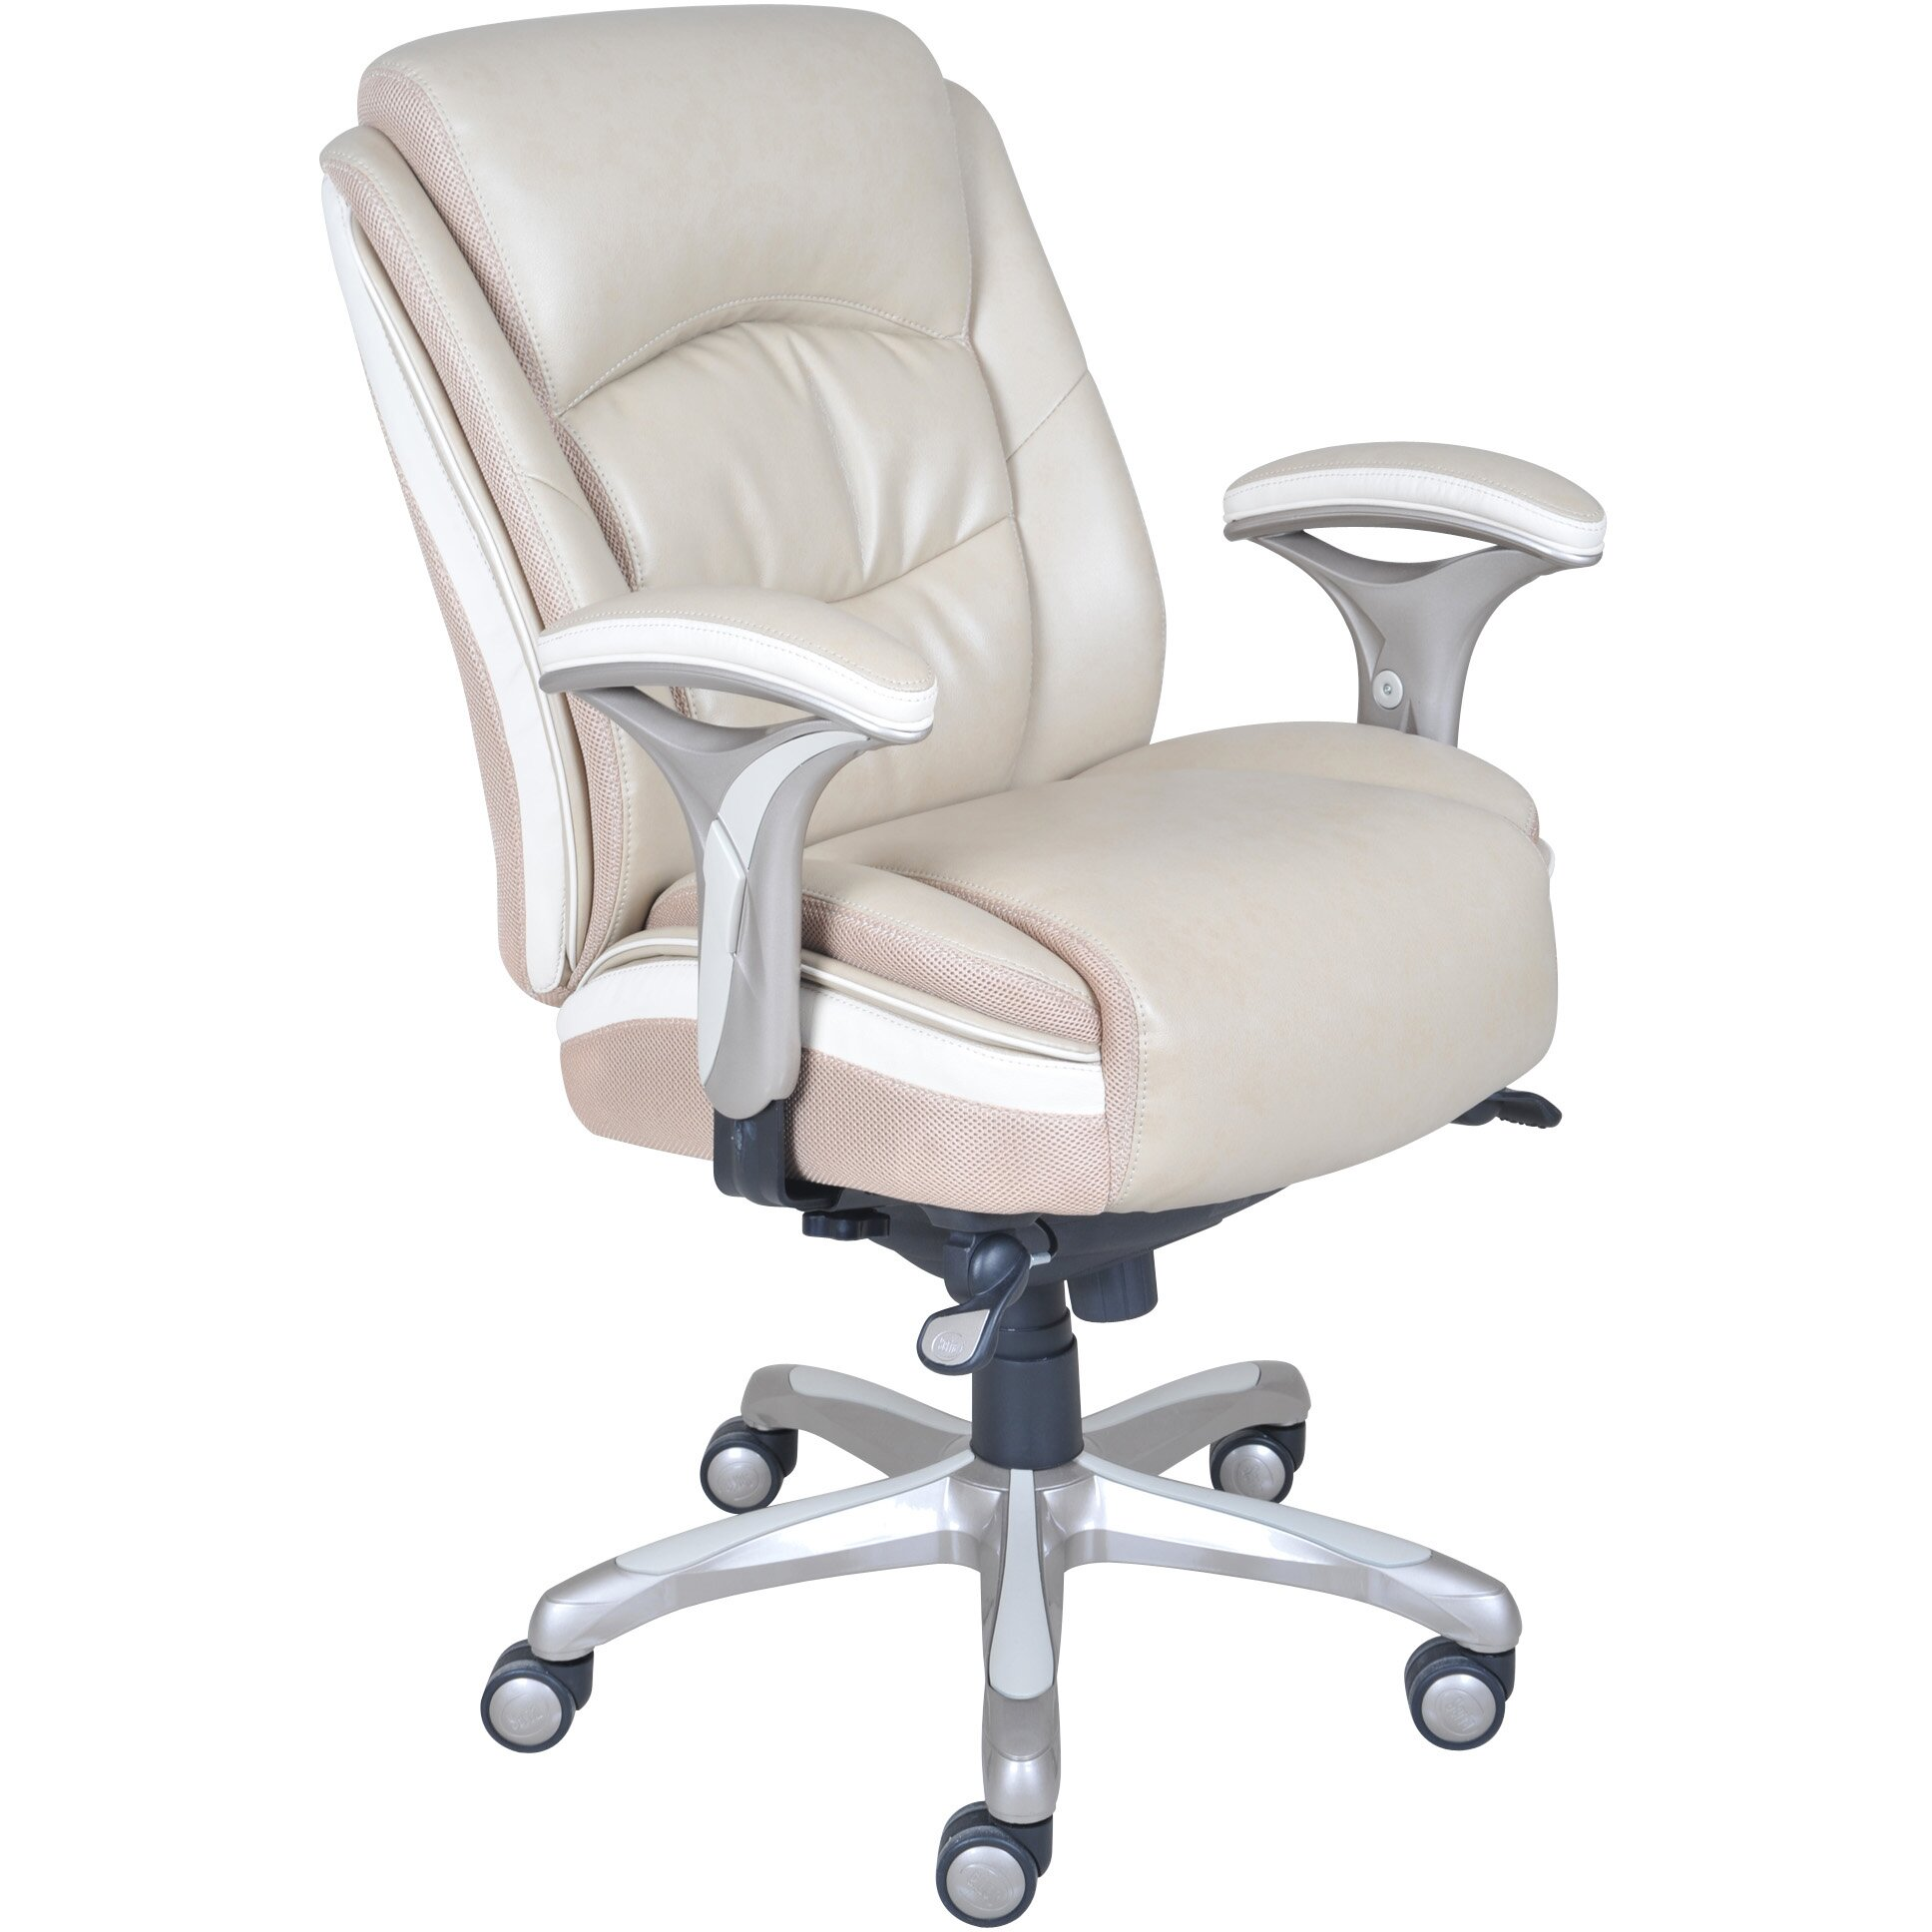 Magnificent Staples Office Chairs On Sale as well 98295 besides 14162c7e2f25dbe2db3825236ae2bad1 as well WorkPro Belbrook Executive Big Tall Fabric in addition Serta Smart Layers Verona Manager Chair. on officemax executive chairs